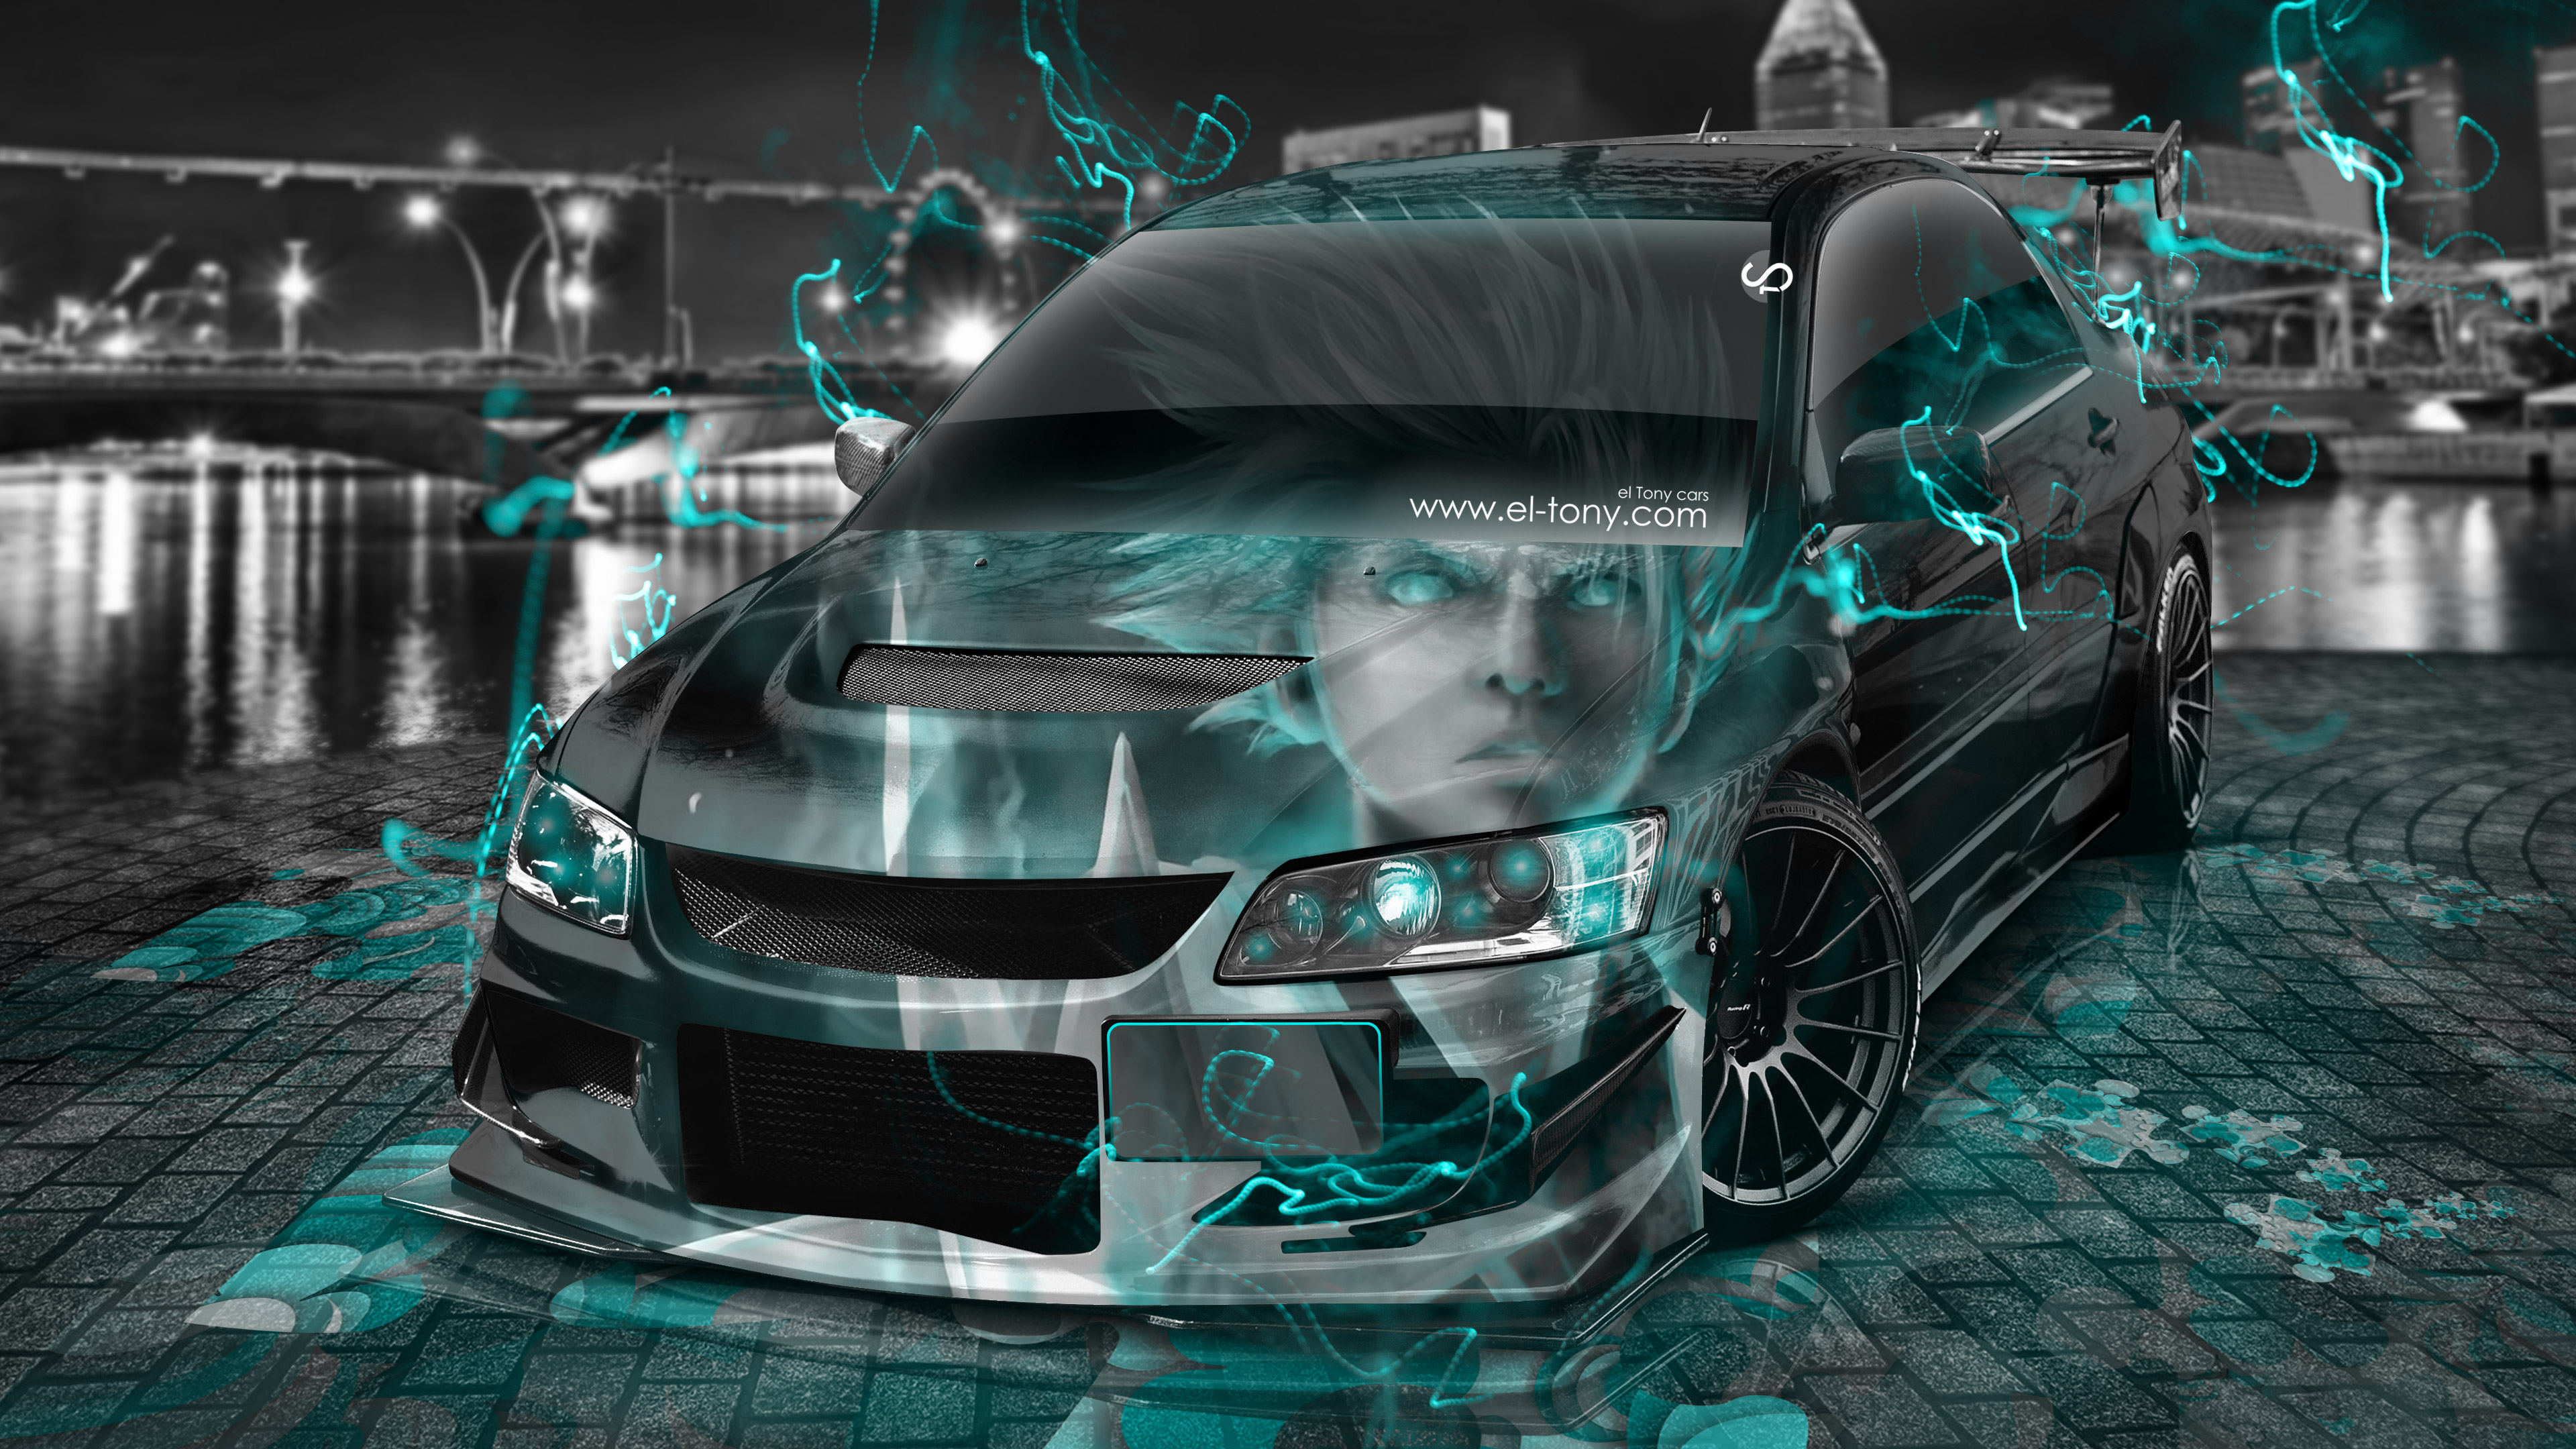 Mitsubishi-Lancer-Evolution-JDM-Tuning-3D-Anime-Boy-Aerography-Night-City-Energy-Car-2015-Azure-Neon-Effects-4K-Wallpapers-design-by-Tony-Kokhan-www.el-tony.com-image